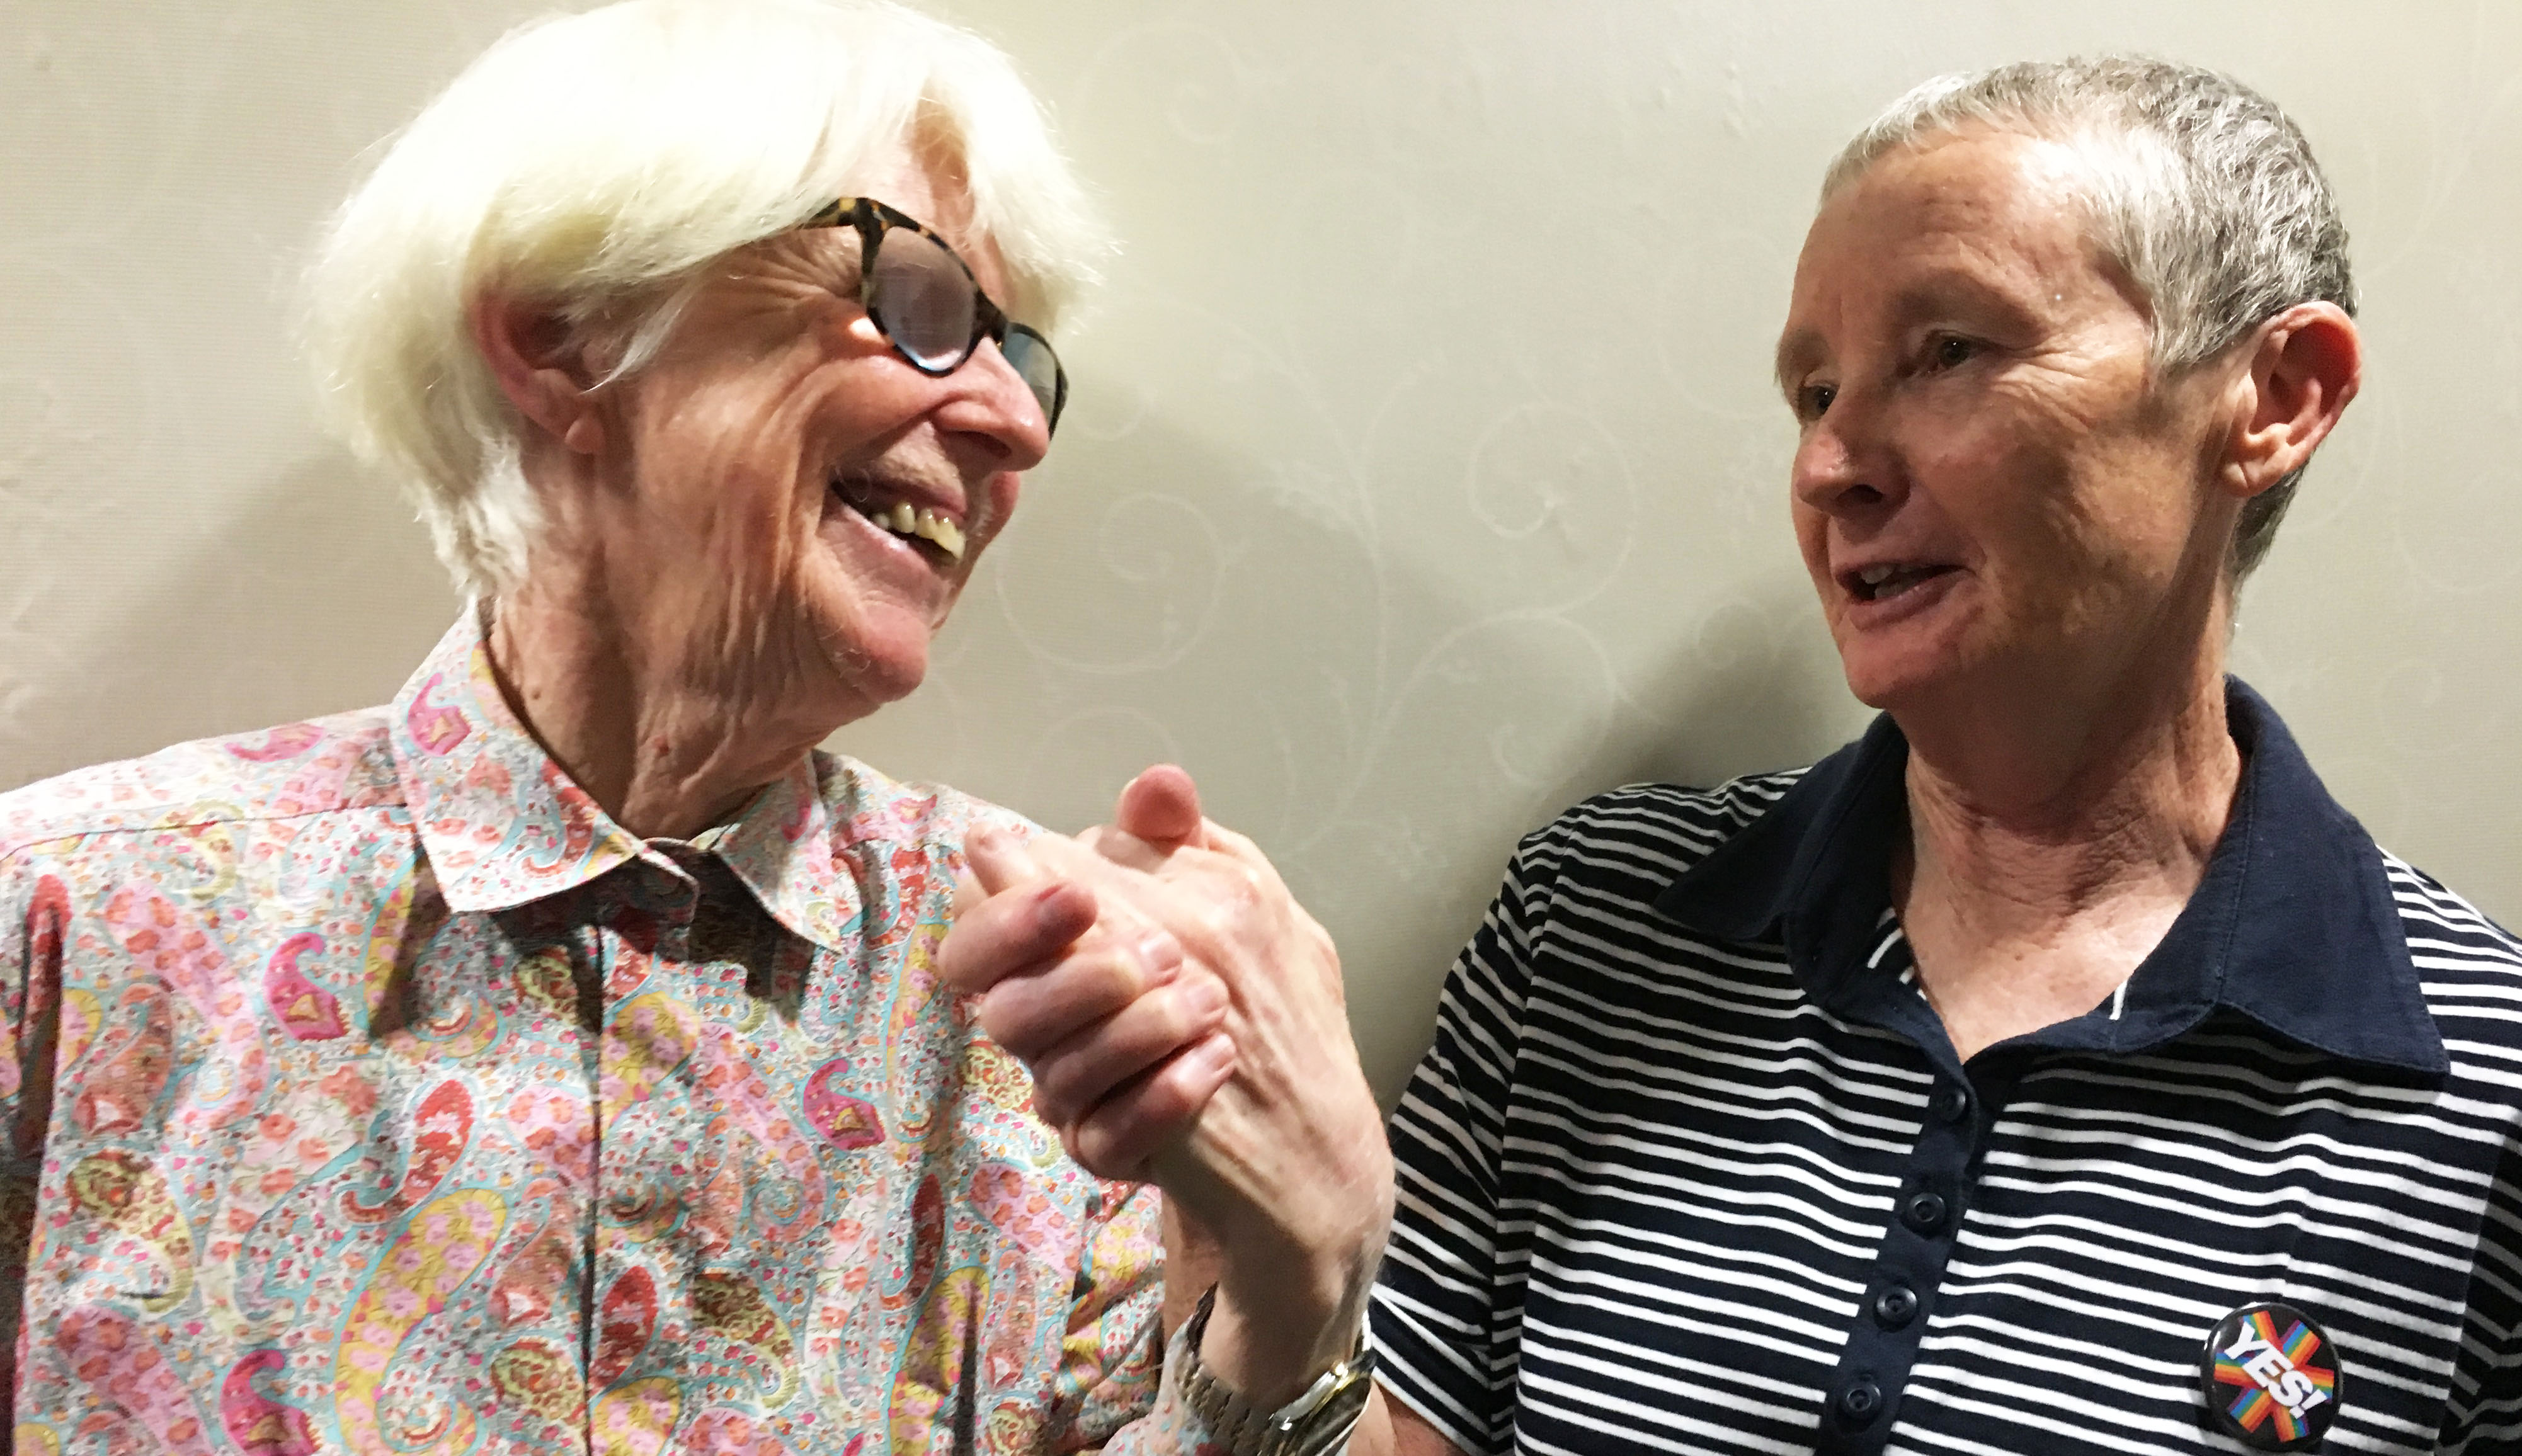 Elderly lesbians are going to hold hands on a tram this